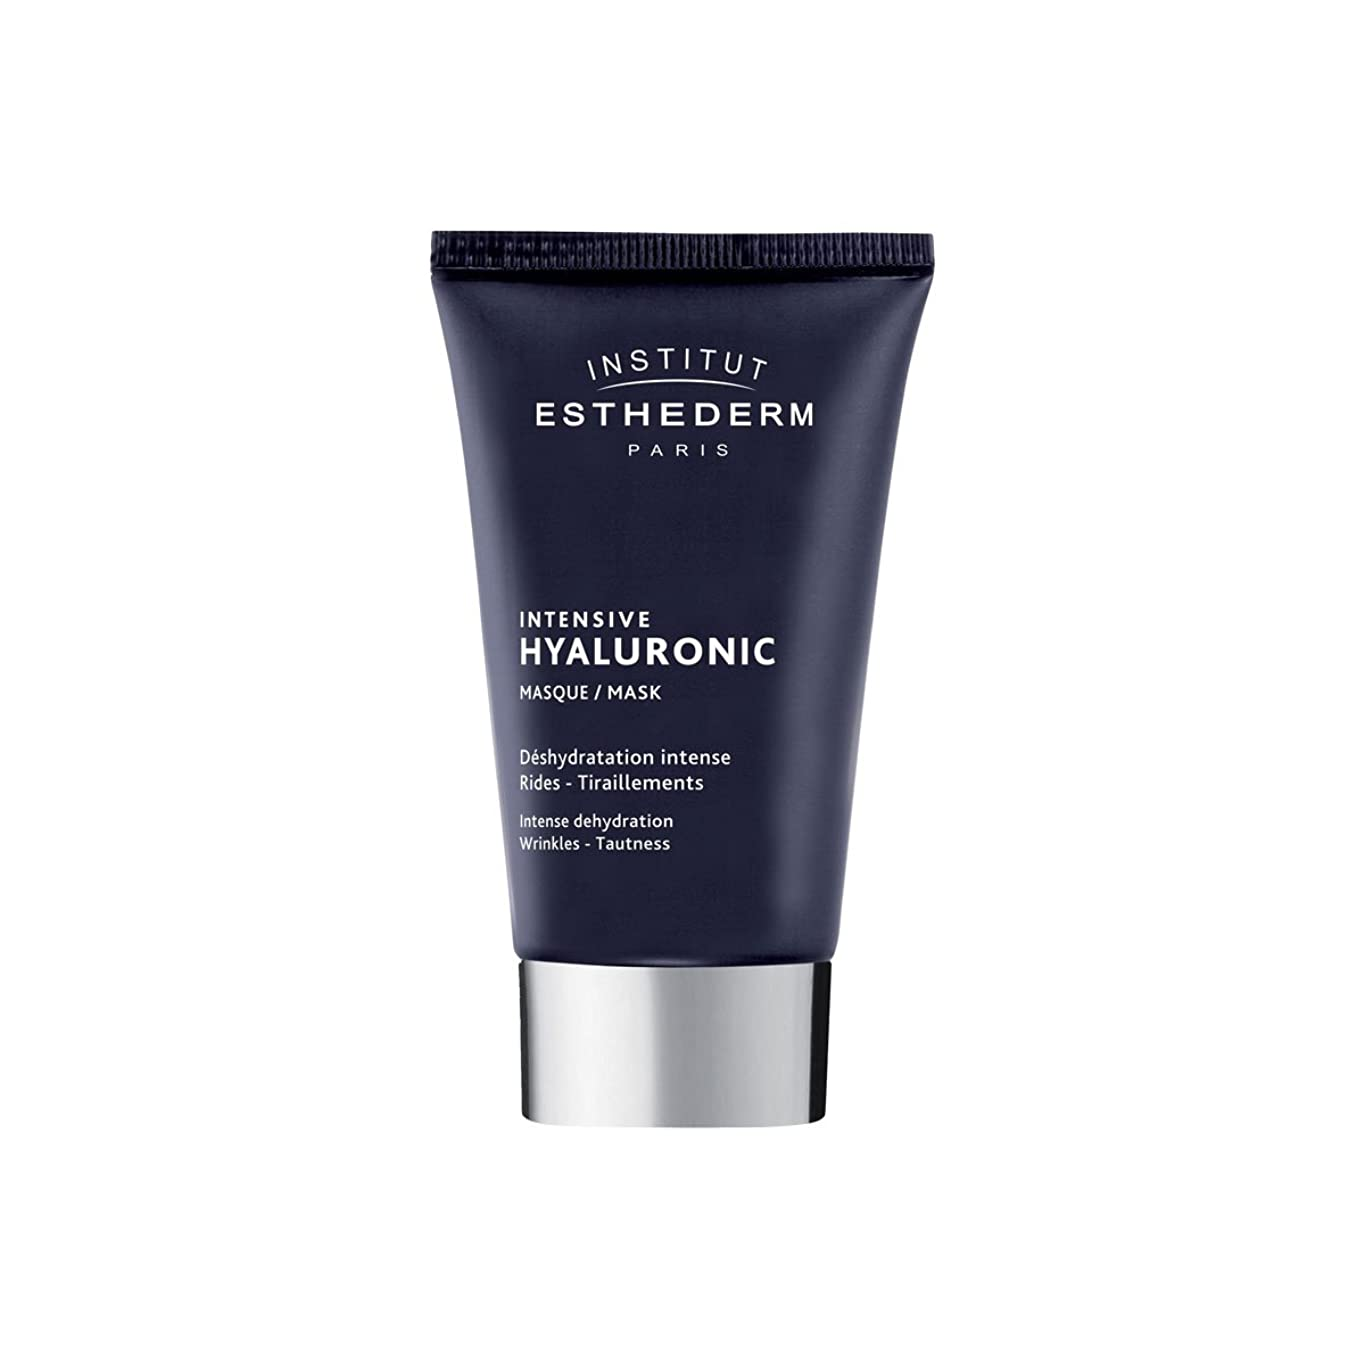 累計キルト速度Institut Esthederm Intensive Hyaluronic Mask 75ml [並行輸入品]